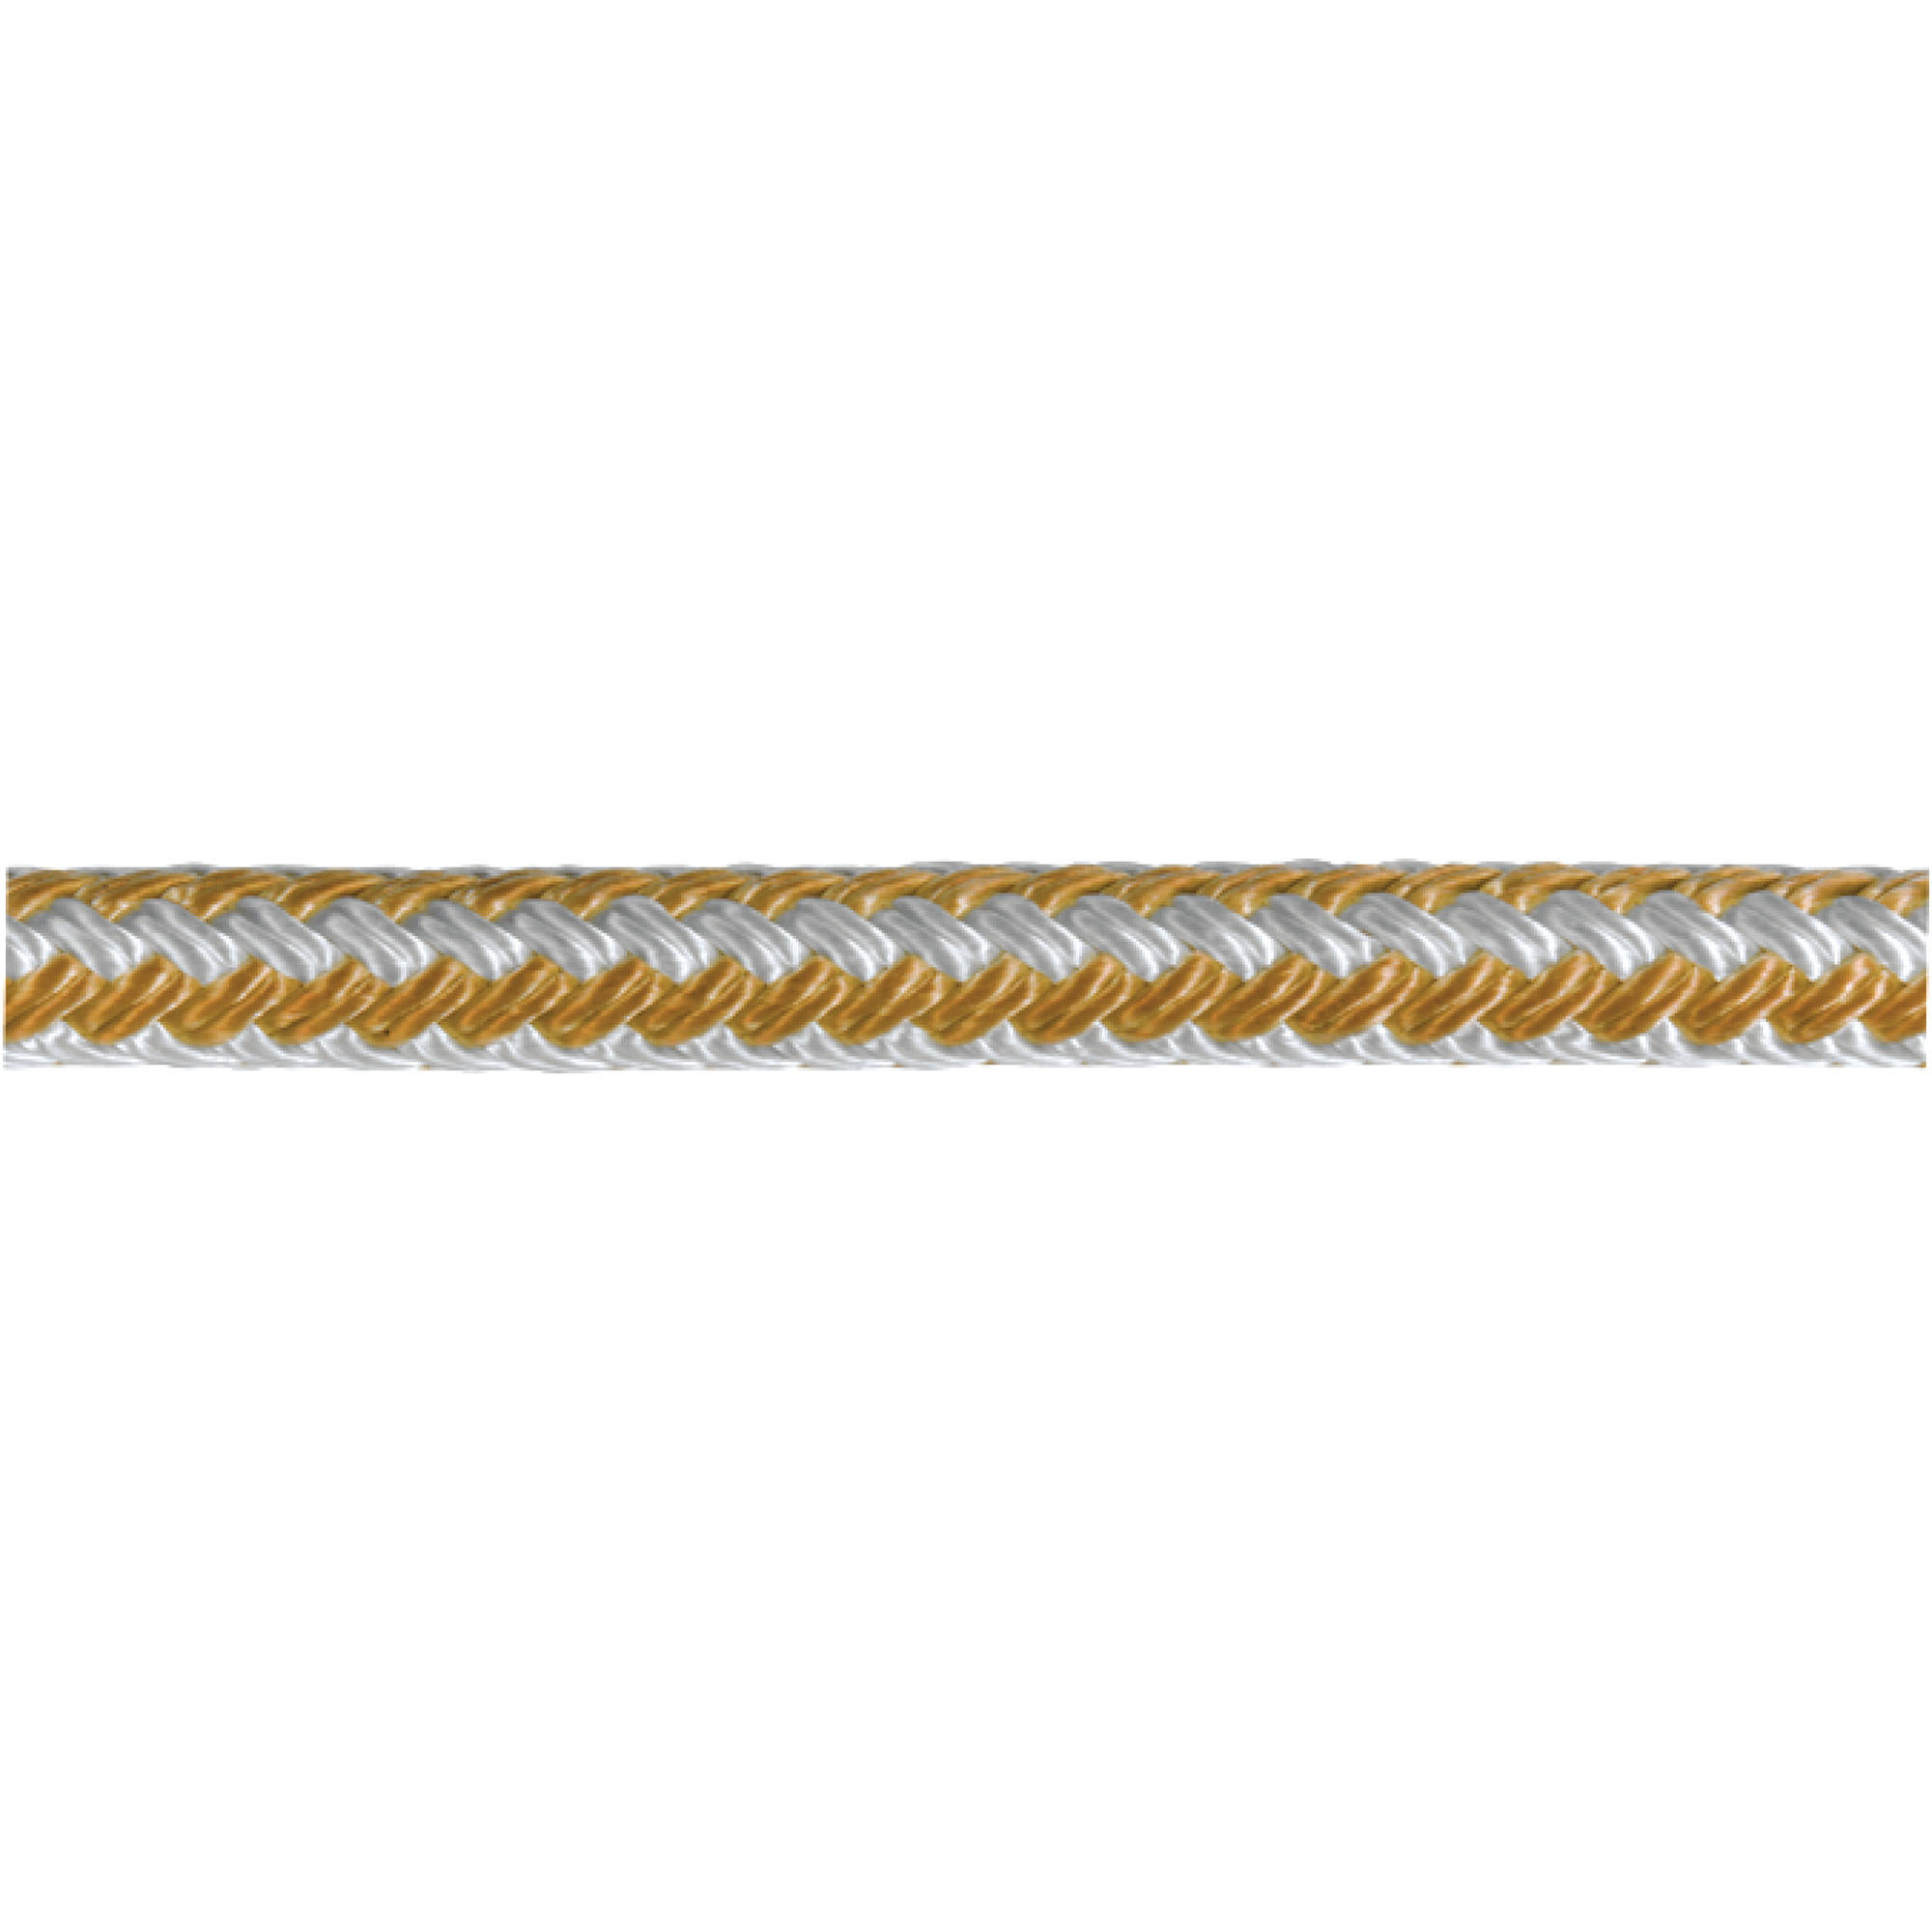 Samson Gold-N-Braid Double Braided Nylon Dock Line by Samson Rope